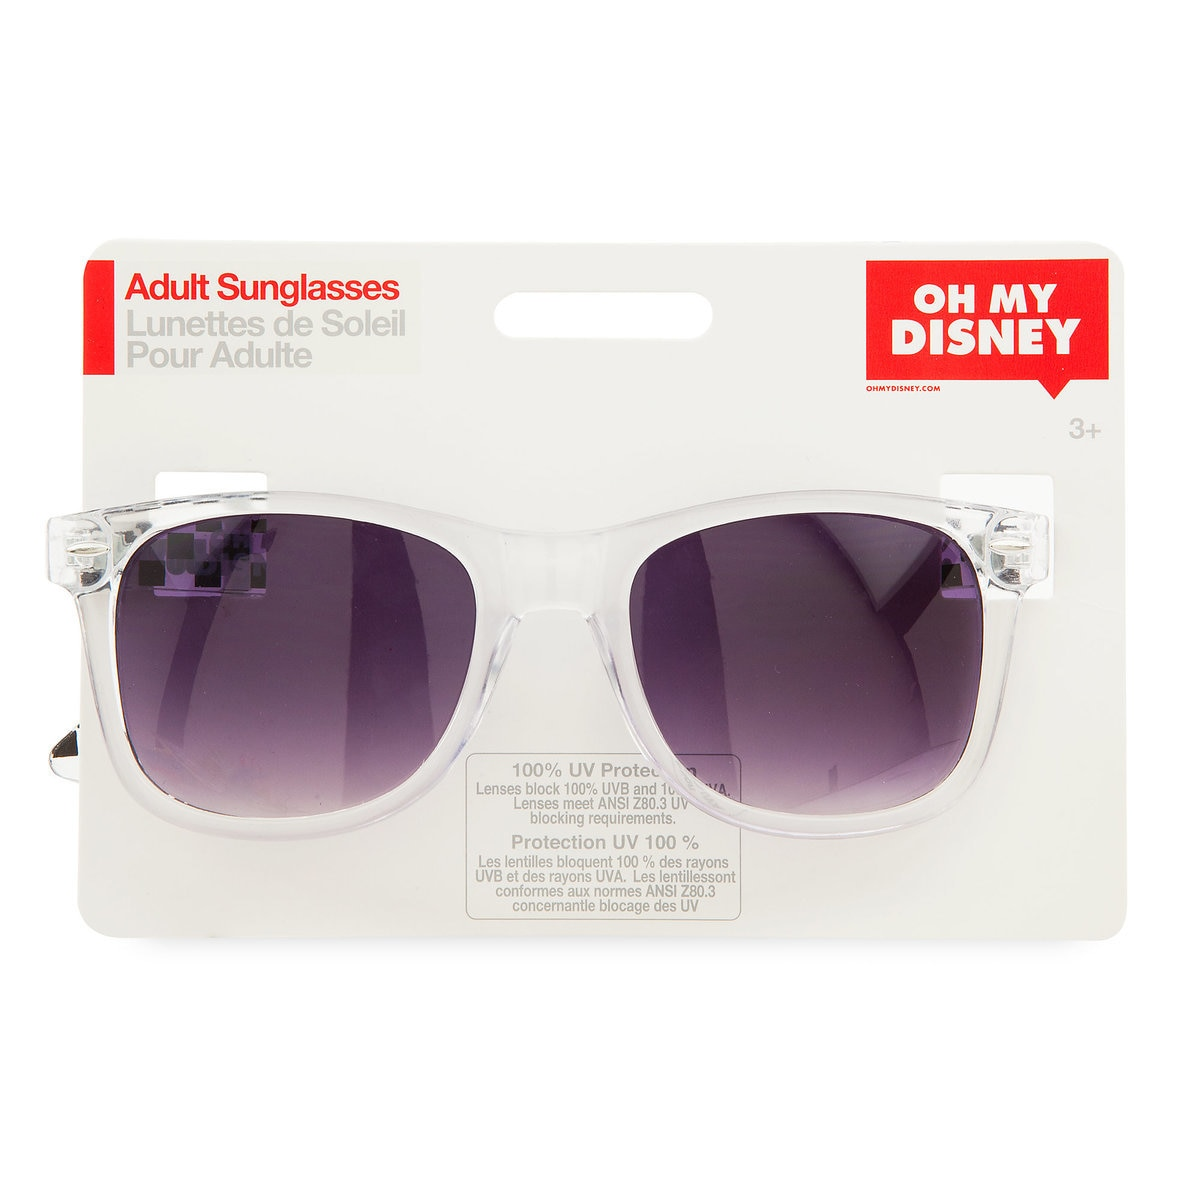 3fc0286908 Product Image of Mickey Mouse Sunglasses for Adults - Oh My Disney # 3